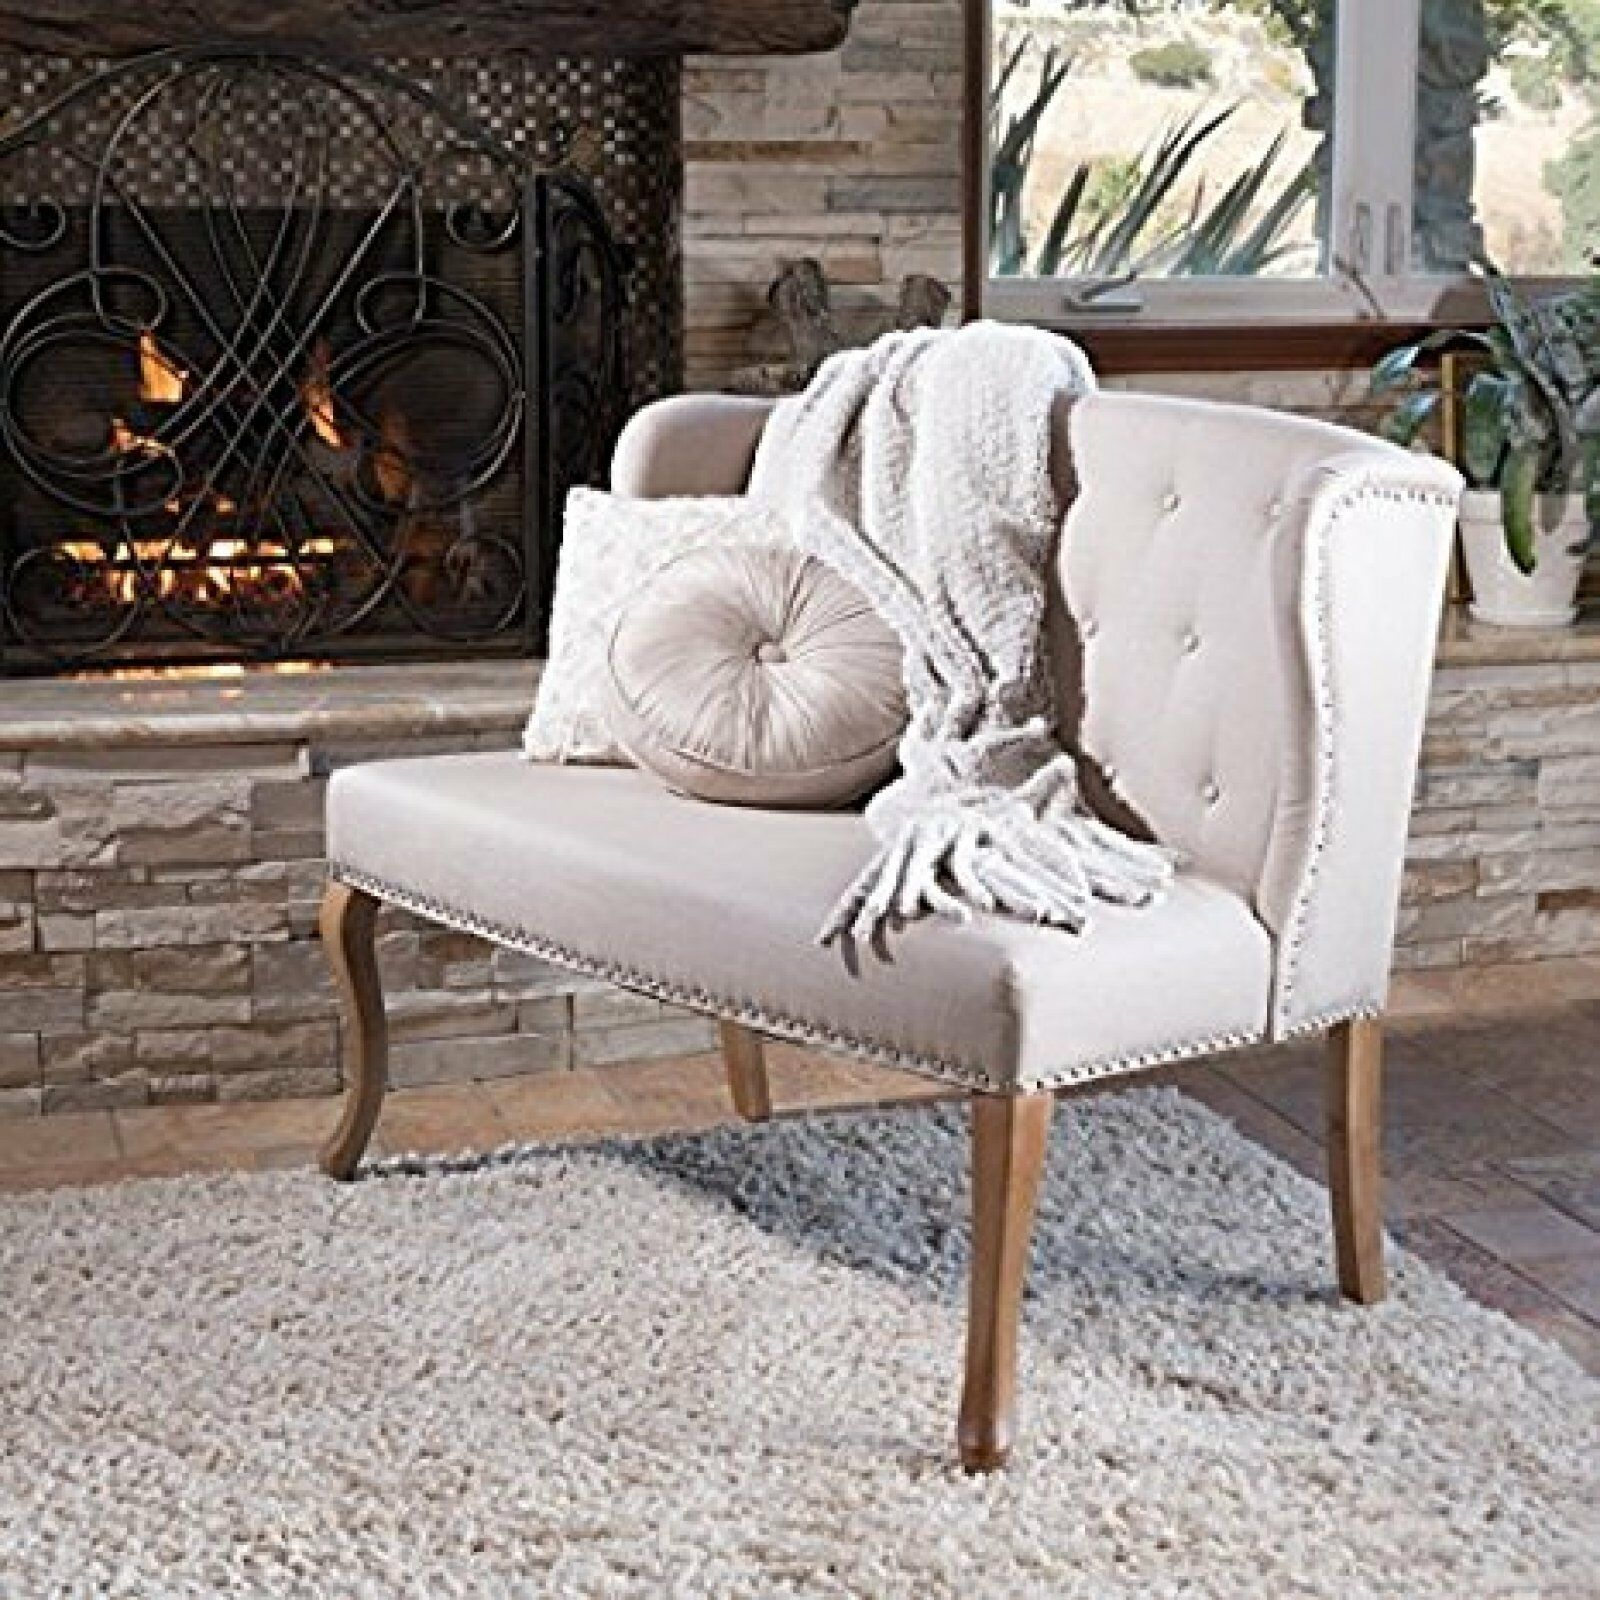 Loveseat For Bedroom Settee Couch Sofa Natural Beige Tufted